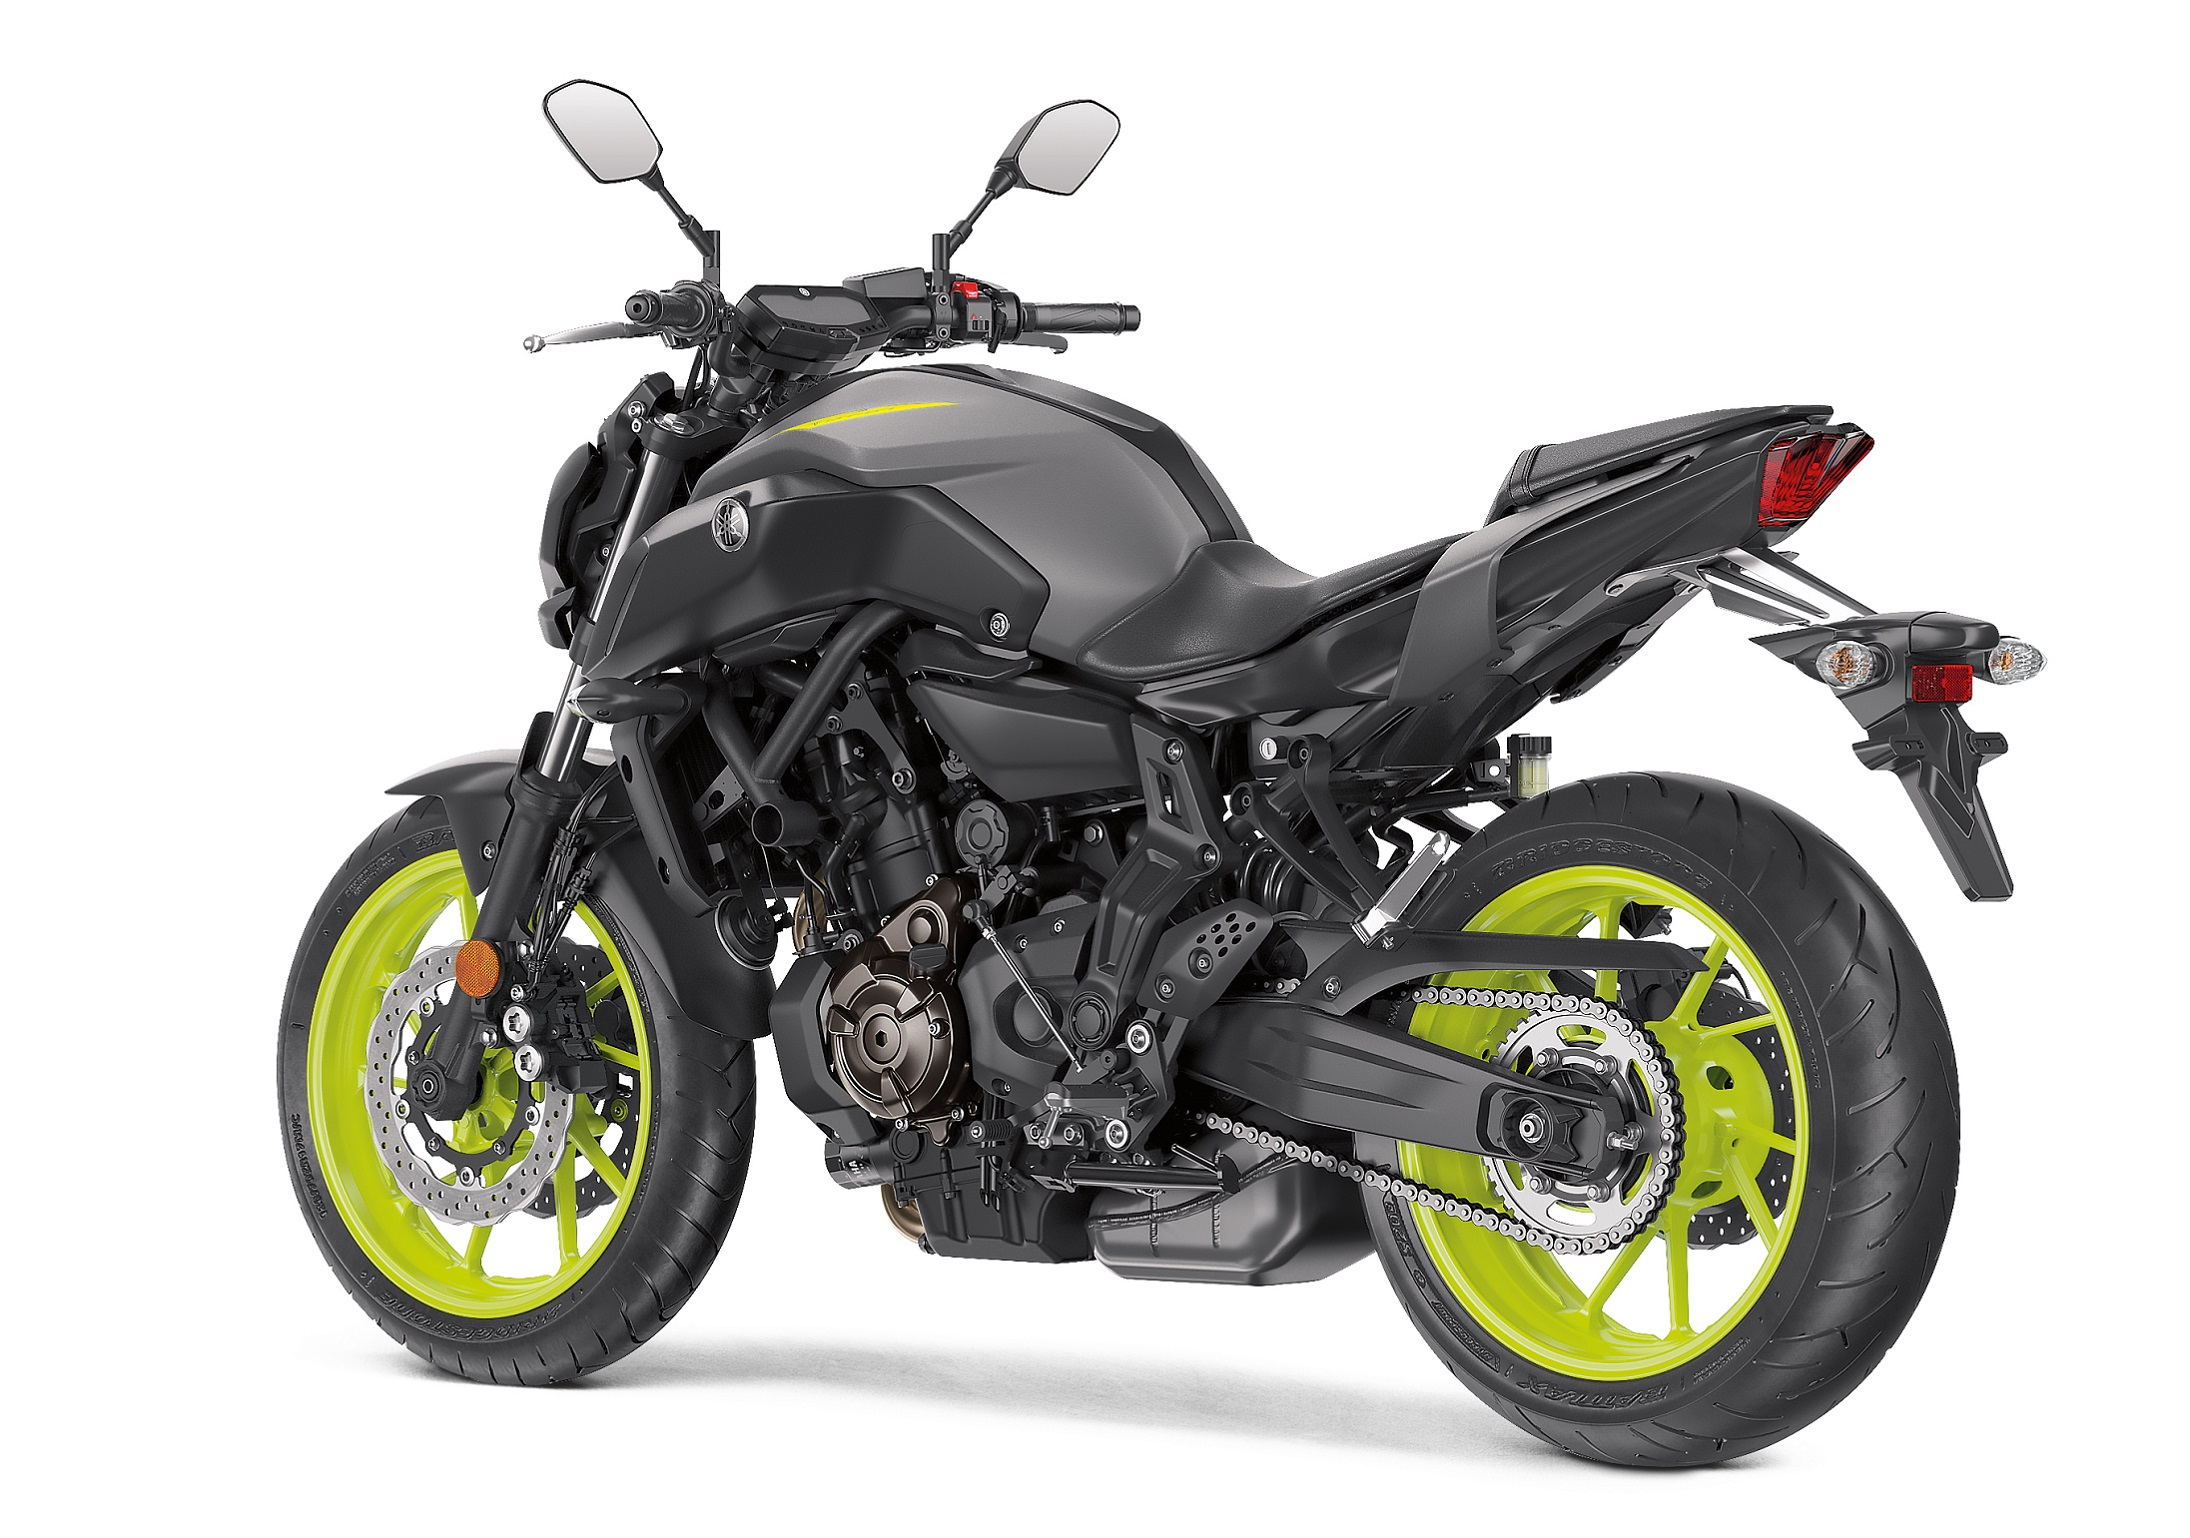 2018 Yamaha Mt 07 First Ride Review Revzilla